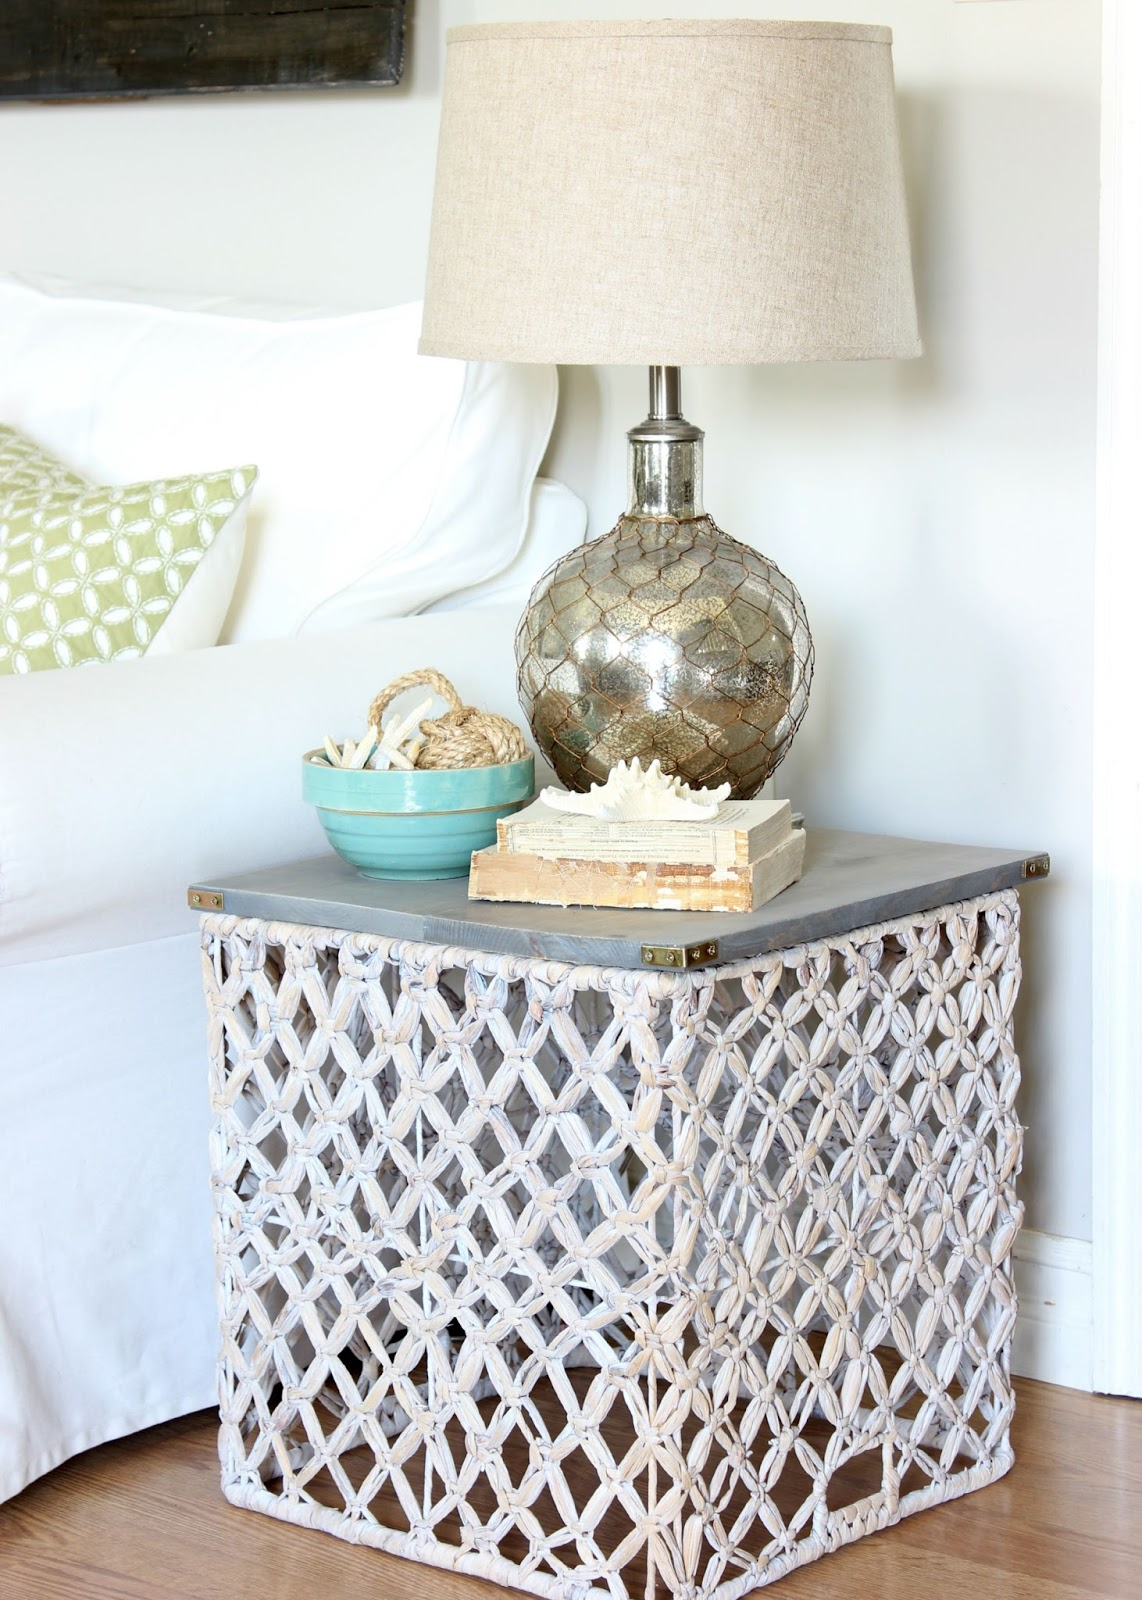 target summer basket becomes chic side table hymns and verses endtable turquoise accent really needed small for beside the sofa like sit there night read lamp dark grey nightstand